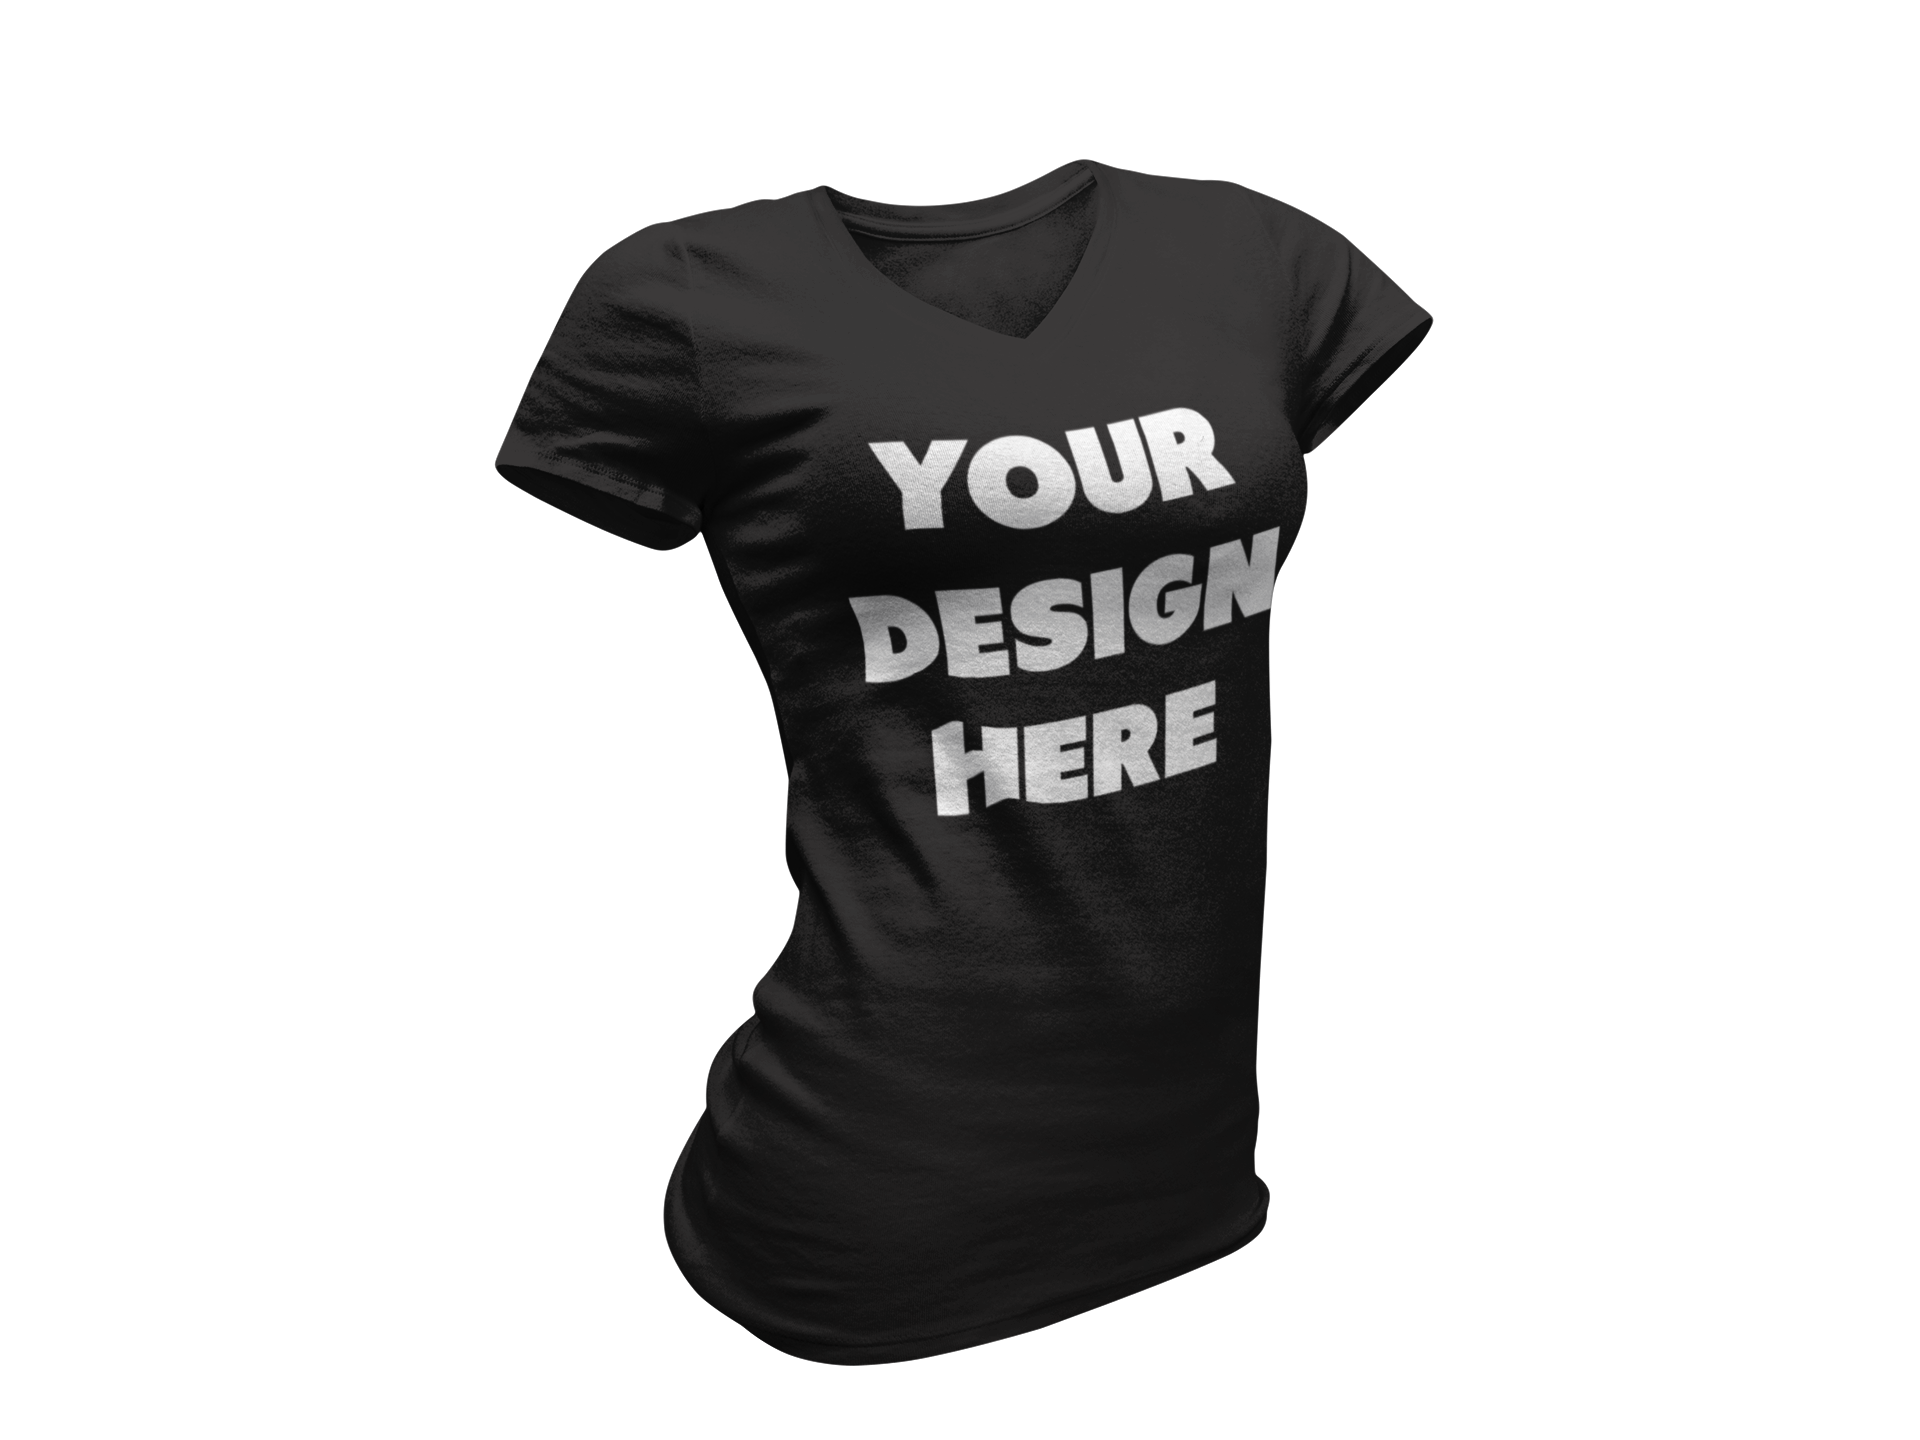 women-s-v-neck-tee-invisible-model-mockup-10657.png